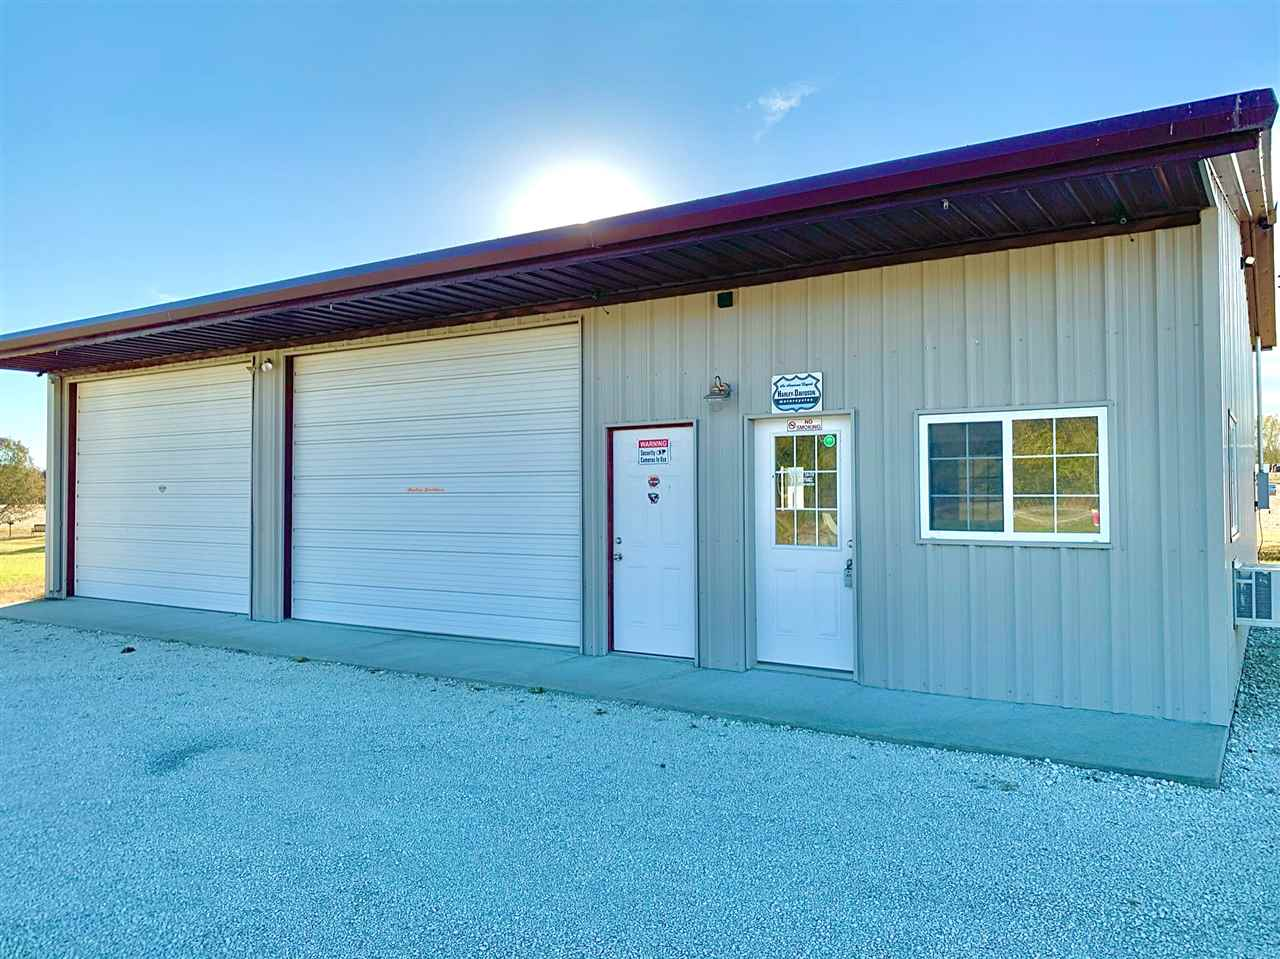 - Great investment for business  - Good visibility and access as it is located on Highway 99 - Located in growing community  - Two overhead doors for easy access - One office, one restroom, and small waiting space - Steel frame, insulated, and finished concrete floor - 30' x 36' shop - 12' x 30' office & bathroom  Call Brice at 785.410.7095 to schedule a showing!